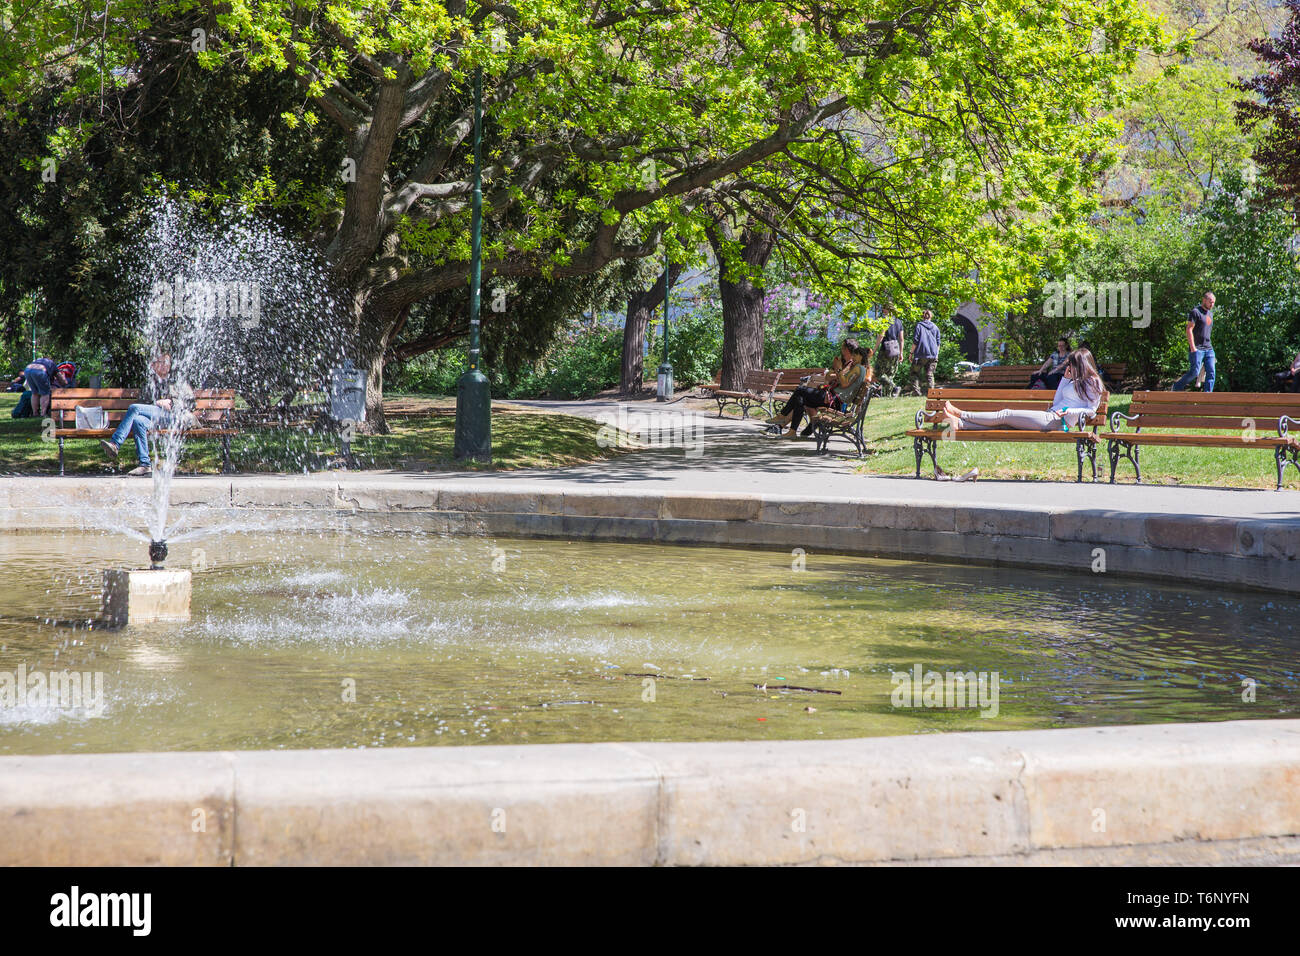 City Prague, Czech Republic. Fountain and tourists, girl talking on the phone, people sitting on the bench.. 2019. 25. April. Travel photo. - Stock Image